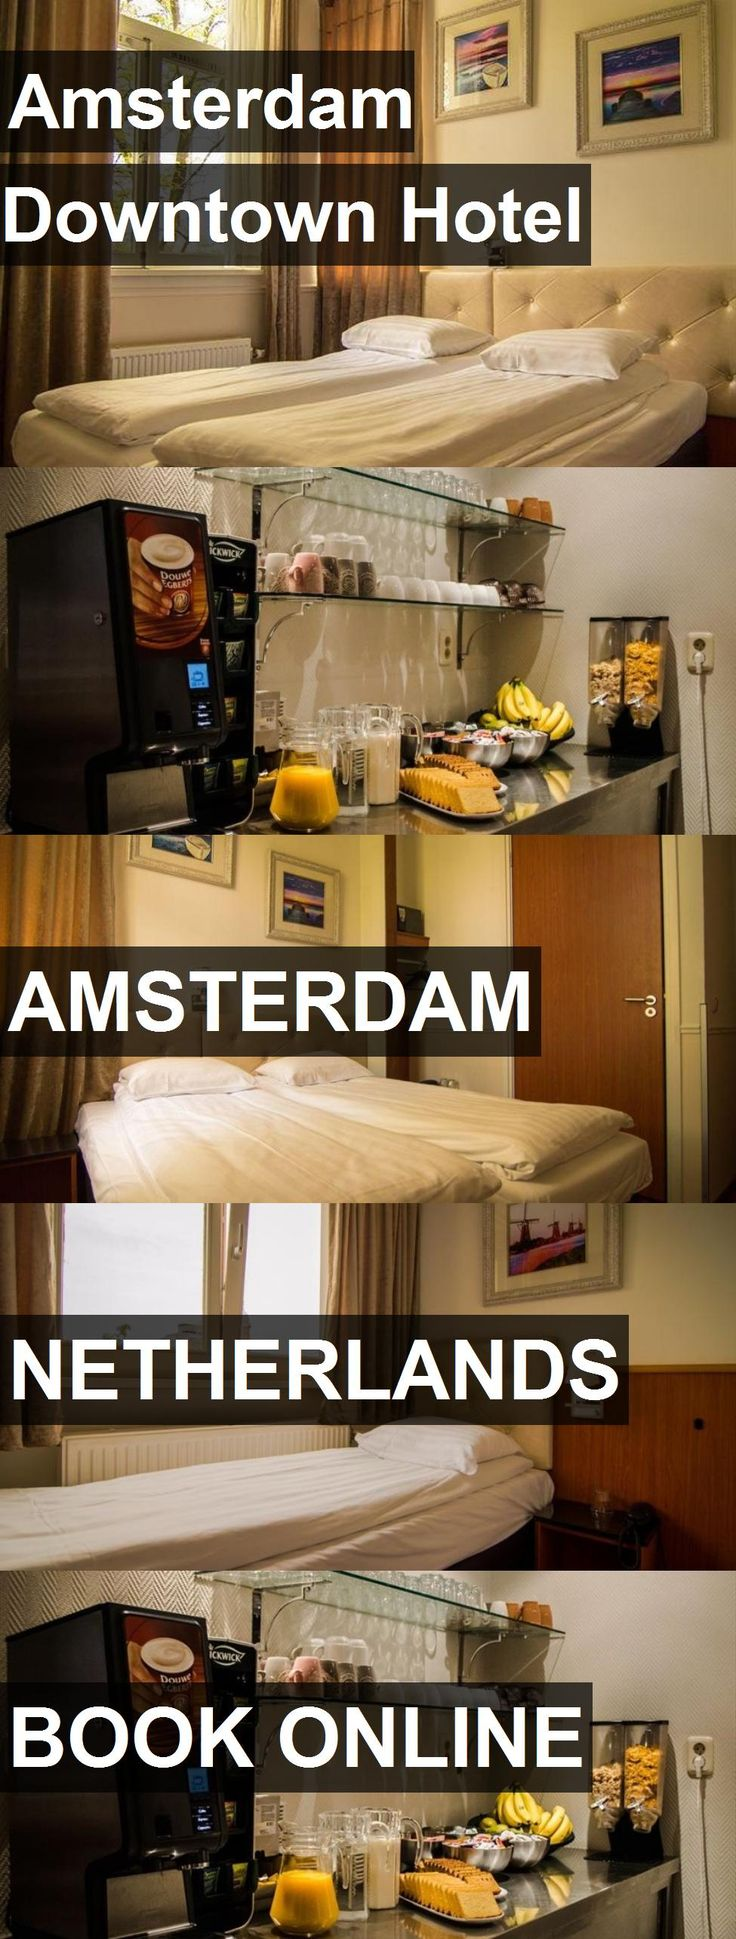 Amsterdam Downtown Hotel in Amsterdam, Netherlands. For more information, photos, reviews and best prices please follow the link. #Netherlands #Amsterdam #travel #vacation #hotel